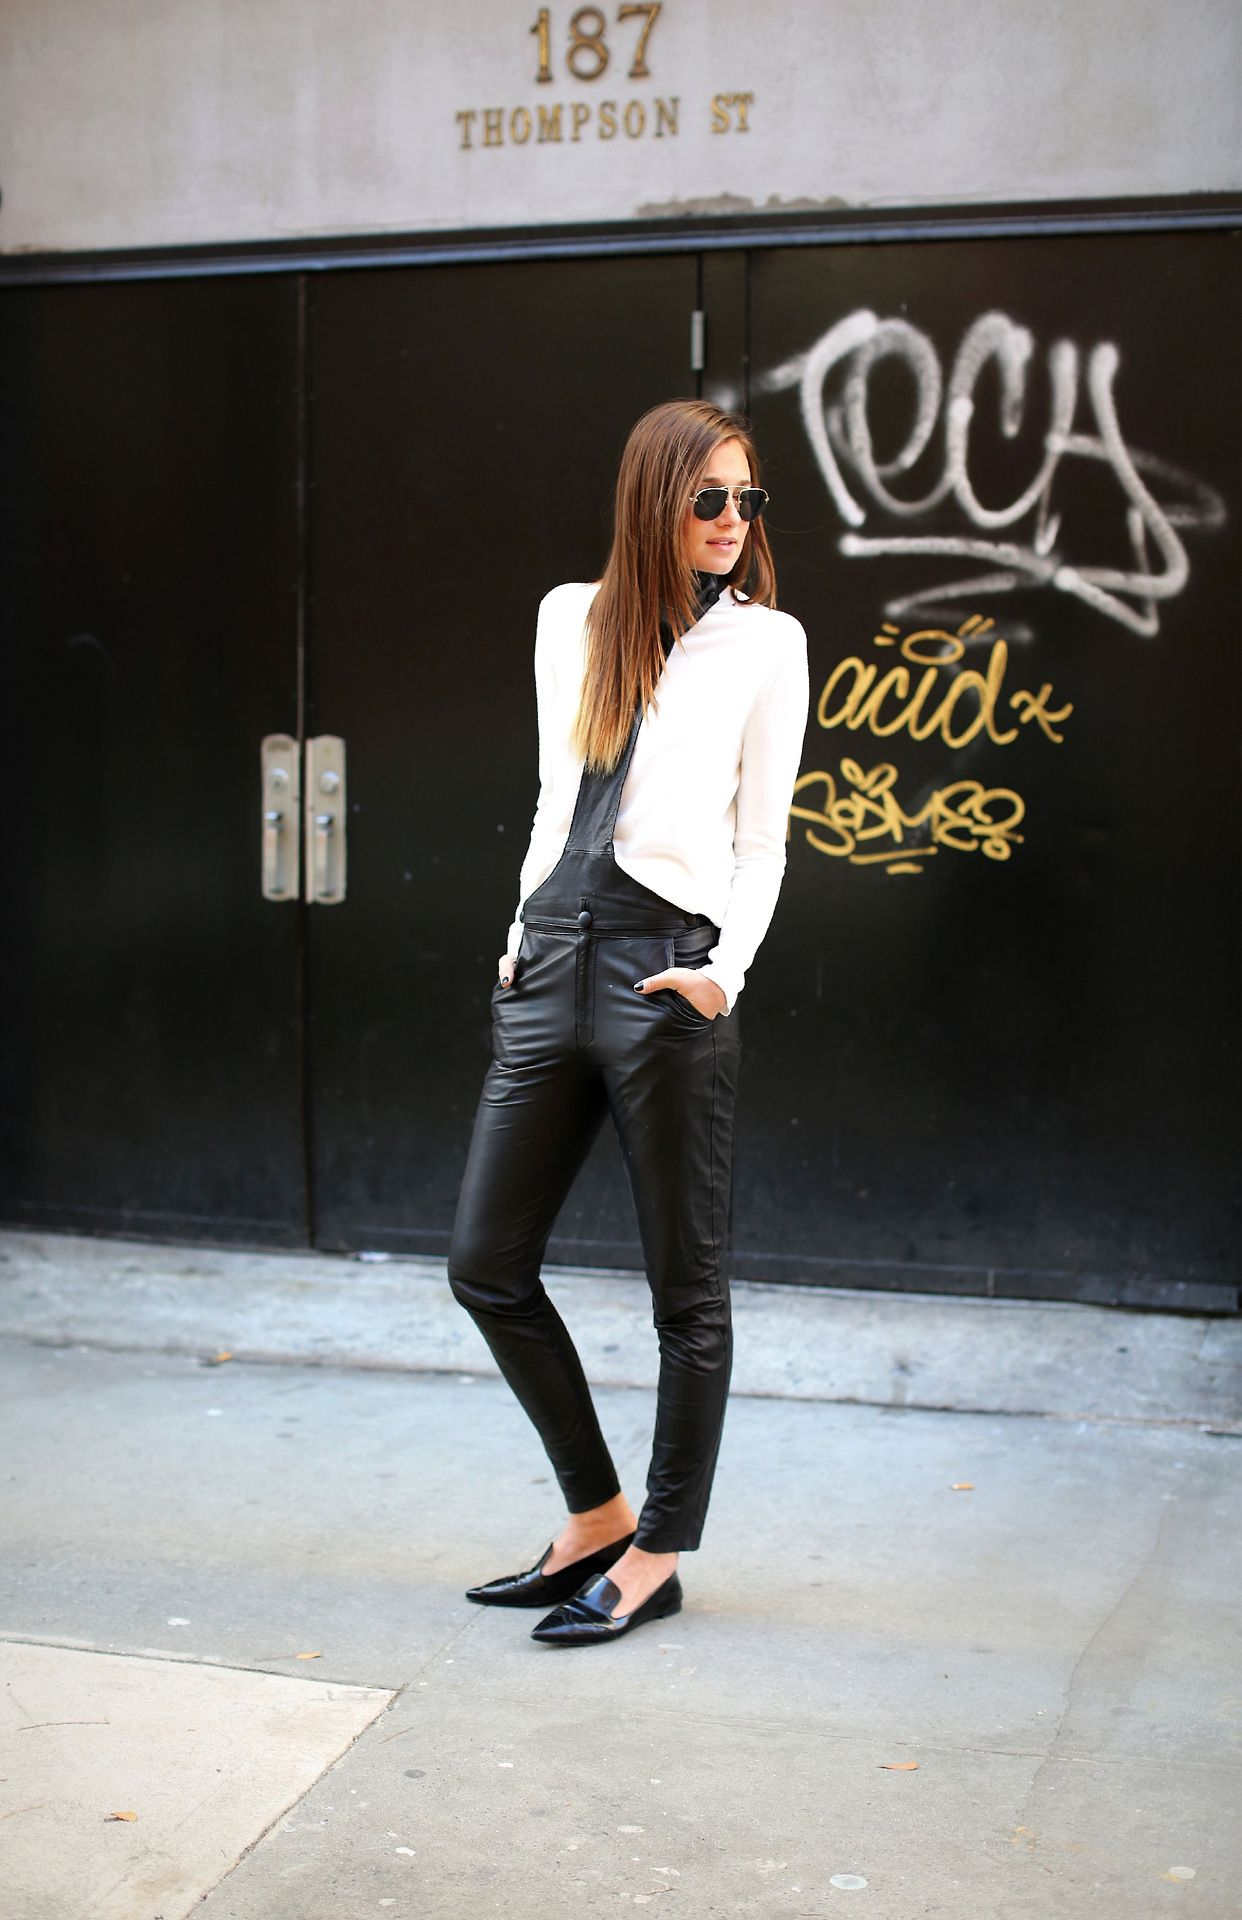 Clothes outfit for woman * teens * dates * stylish * casual * fall * spring * winter * classic * casual * fun * cute* sparkle * Candice Wicks